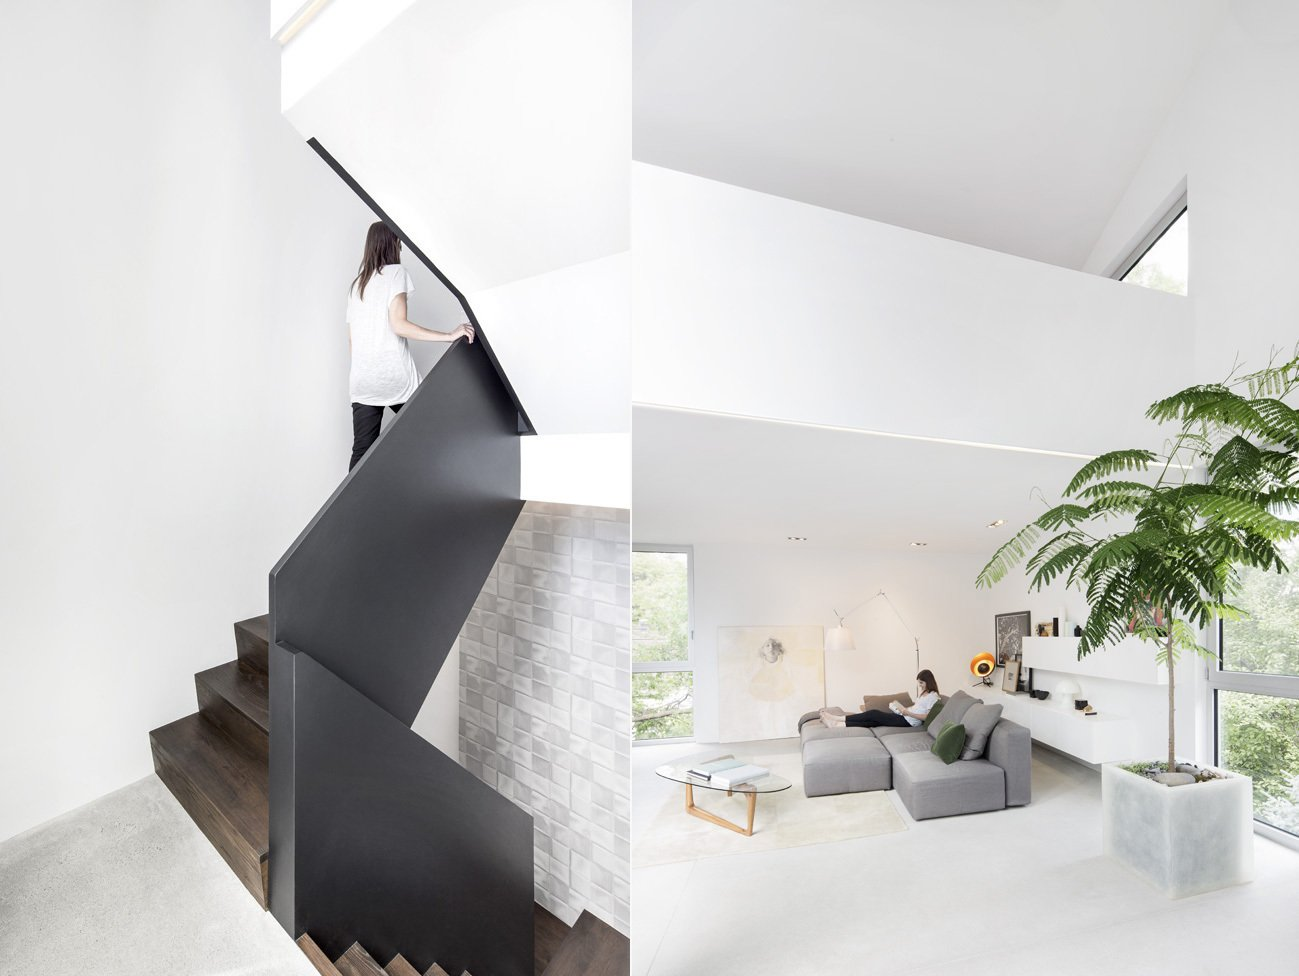 """Balaban designed the staircase to read like a piece of furniture. It features handsome wood steps and a metal railing. Balaban flipped the traditional hierarchy of the house and placed bedrooms on the ground floor and living spaces on the second story. """"We ran through a lot of design iterations during the concept phase—some of them were a bit off the wall—before finally settling on the form and the concept of inversing the spaces and digging out the courtyard from the center of the house,"""" Balaban says. """"We all went through a few months of weekly meetings and iterations to fine tune the design and the spaces, choose the materials and settle on the details. We tried just about every combination and permutation of spatial organization and stair configuration possible. The shape of the courtyard also evolved to respond to the spaces moving around. Time was an important and indispensable ingredient in the process!""""  """"The living space is located on the upper floor and it's quite pleasant,"""" Vu says. """"The space is flooded with natural light all year long and has a view of mature trees in the neighborhood—it's stunning. We almost feel like we're in the countryside!""""  Photo 4 of 12 in 11 Modern Stairways That Do Way More Than Just Connect Floors from A Minimal, Metal-Clad Montreal House With A Hidden Courtyard"""